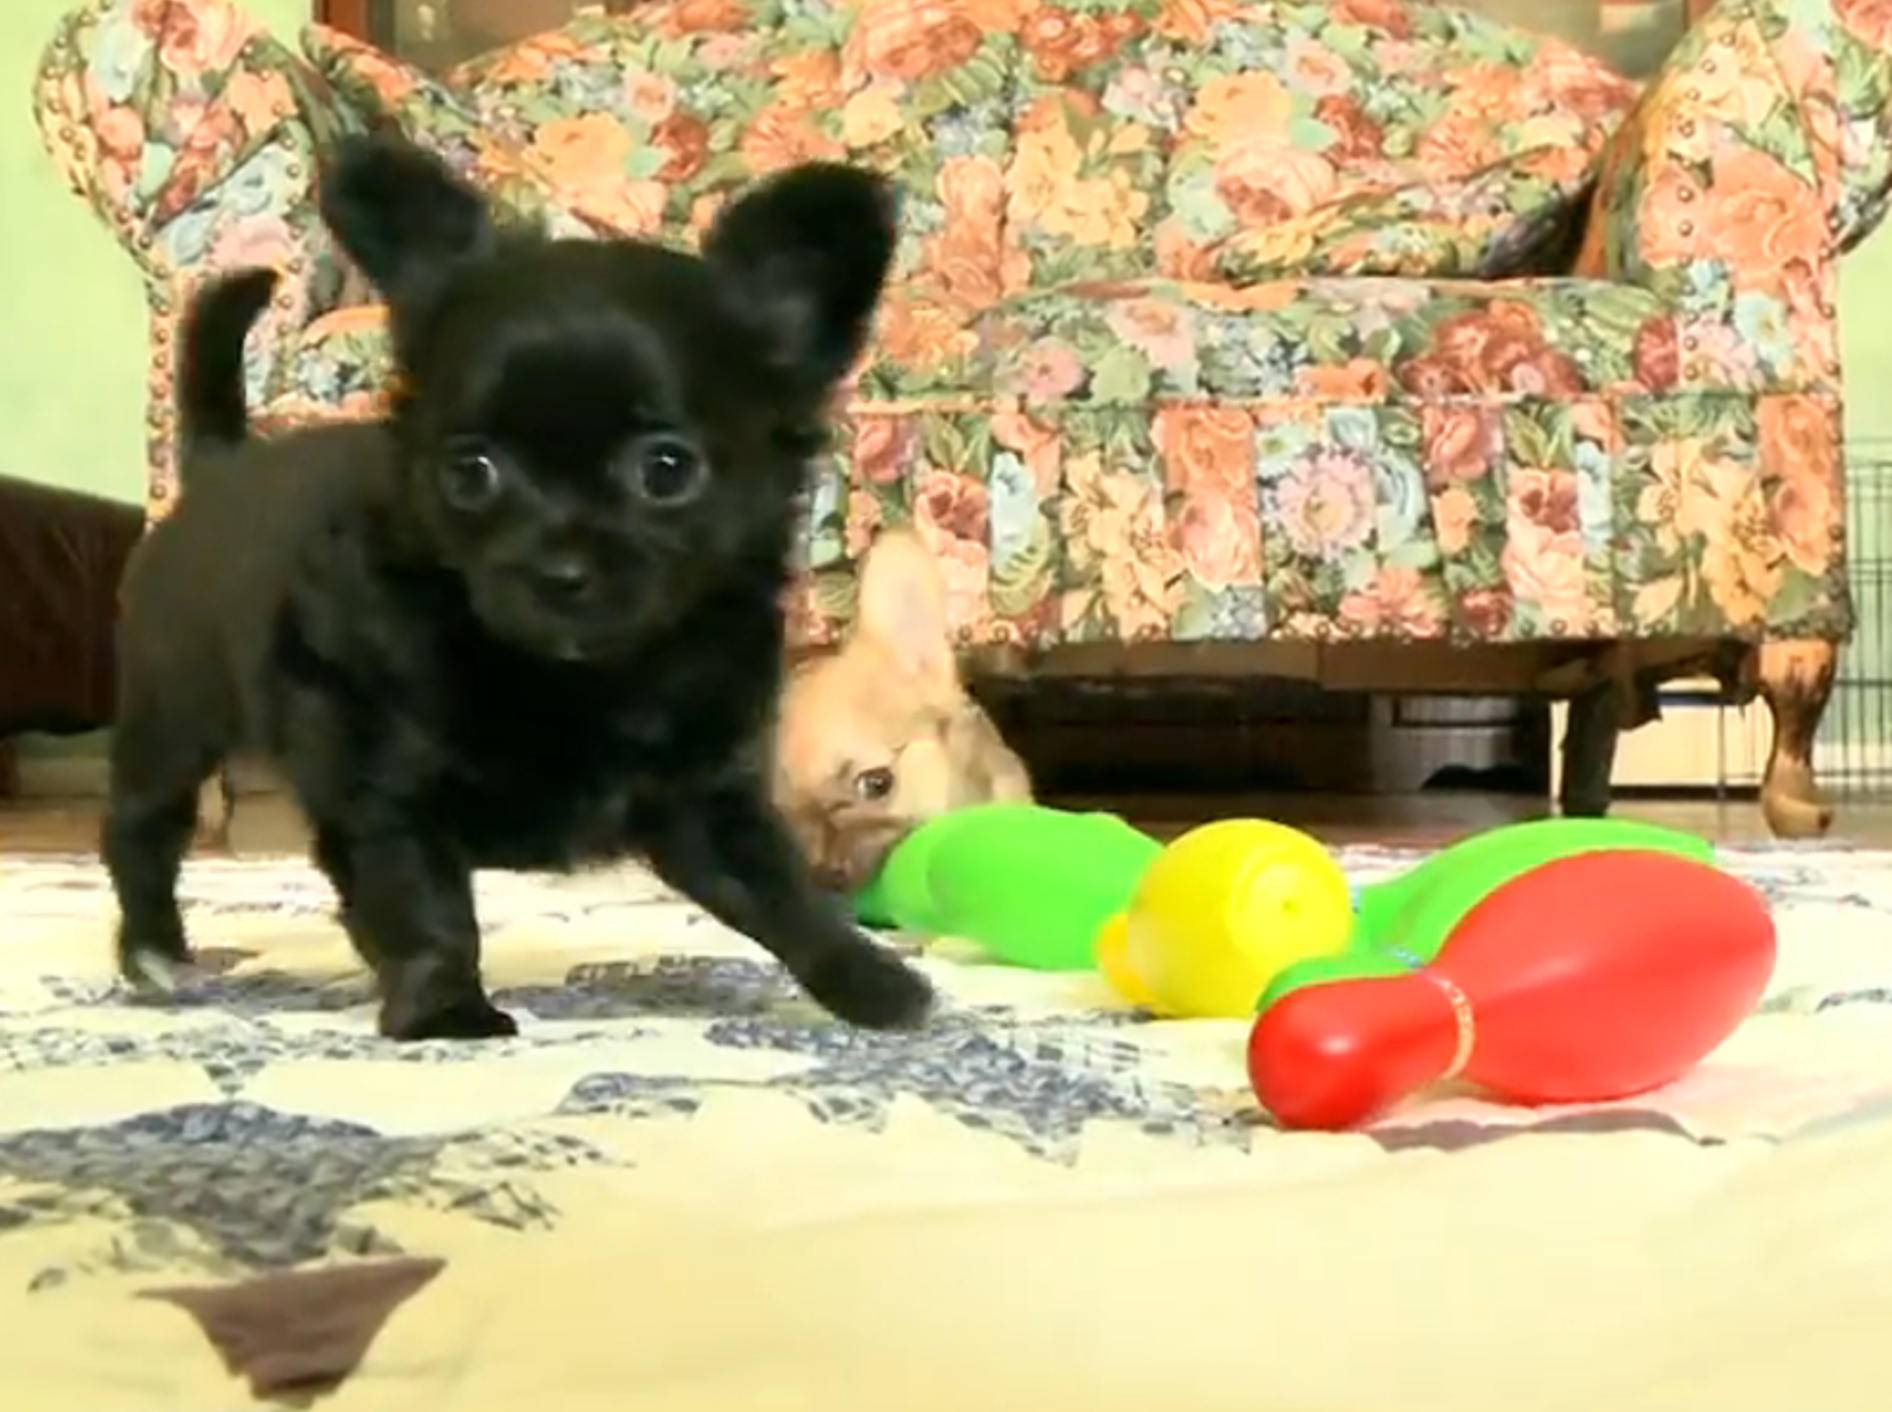 Chihuahua-Welpen als Bowling-Profis? – Bild: YouTube / The Pet Collective